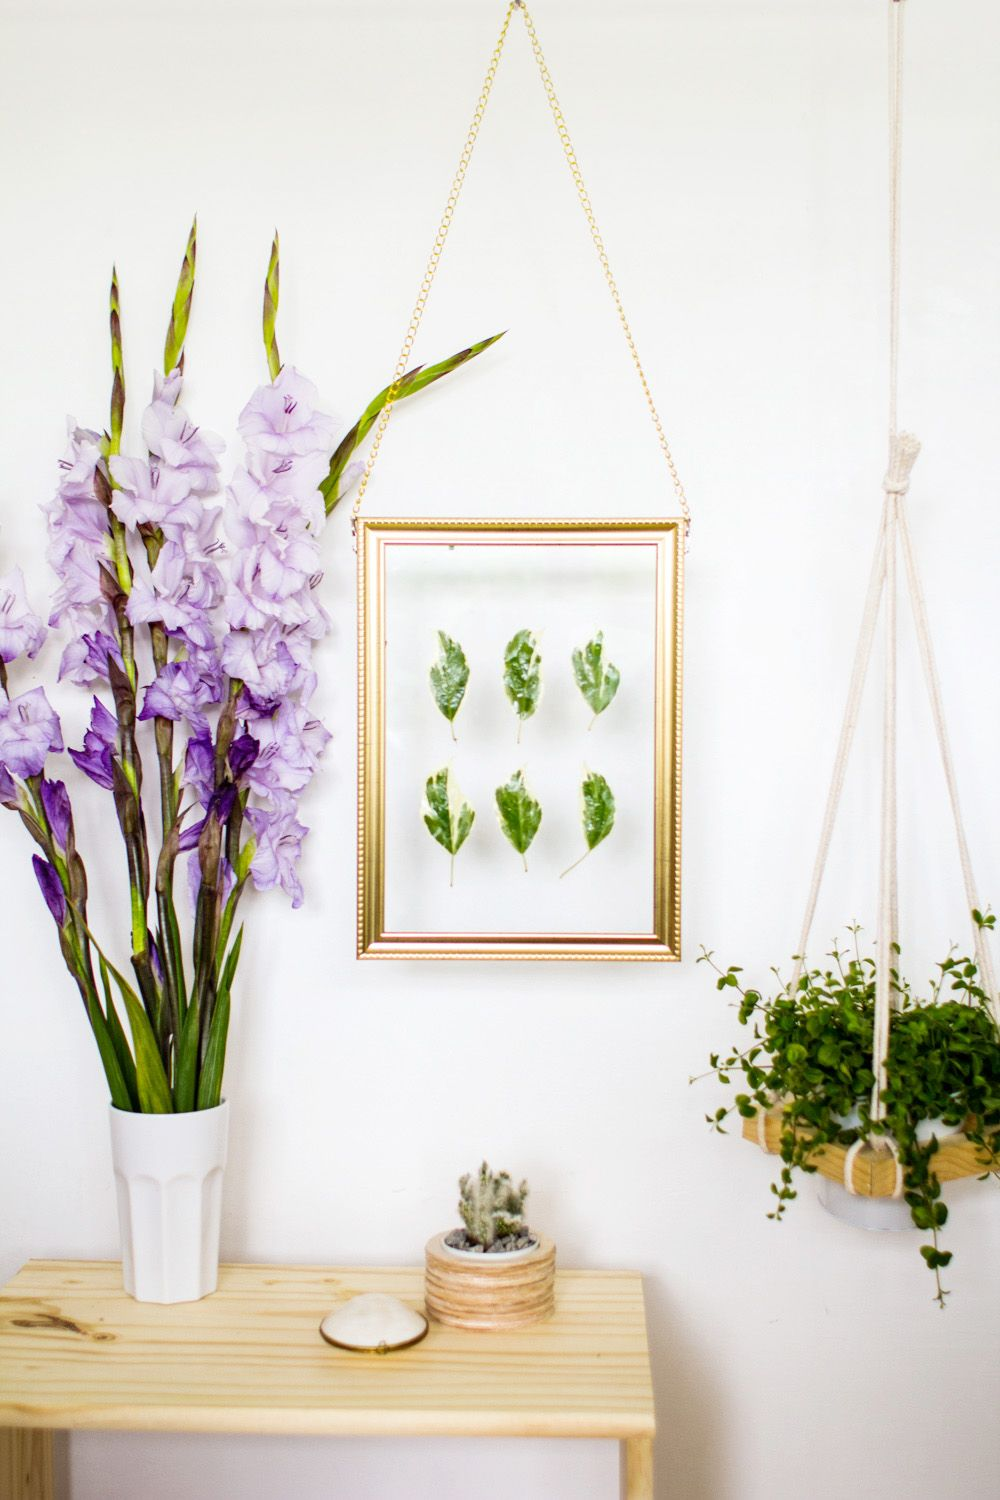 DIY Hanging Gold Frame Leaf Art Finished